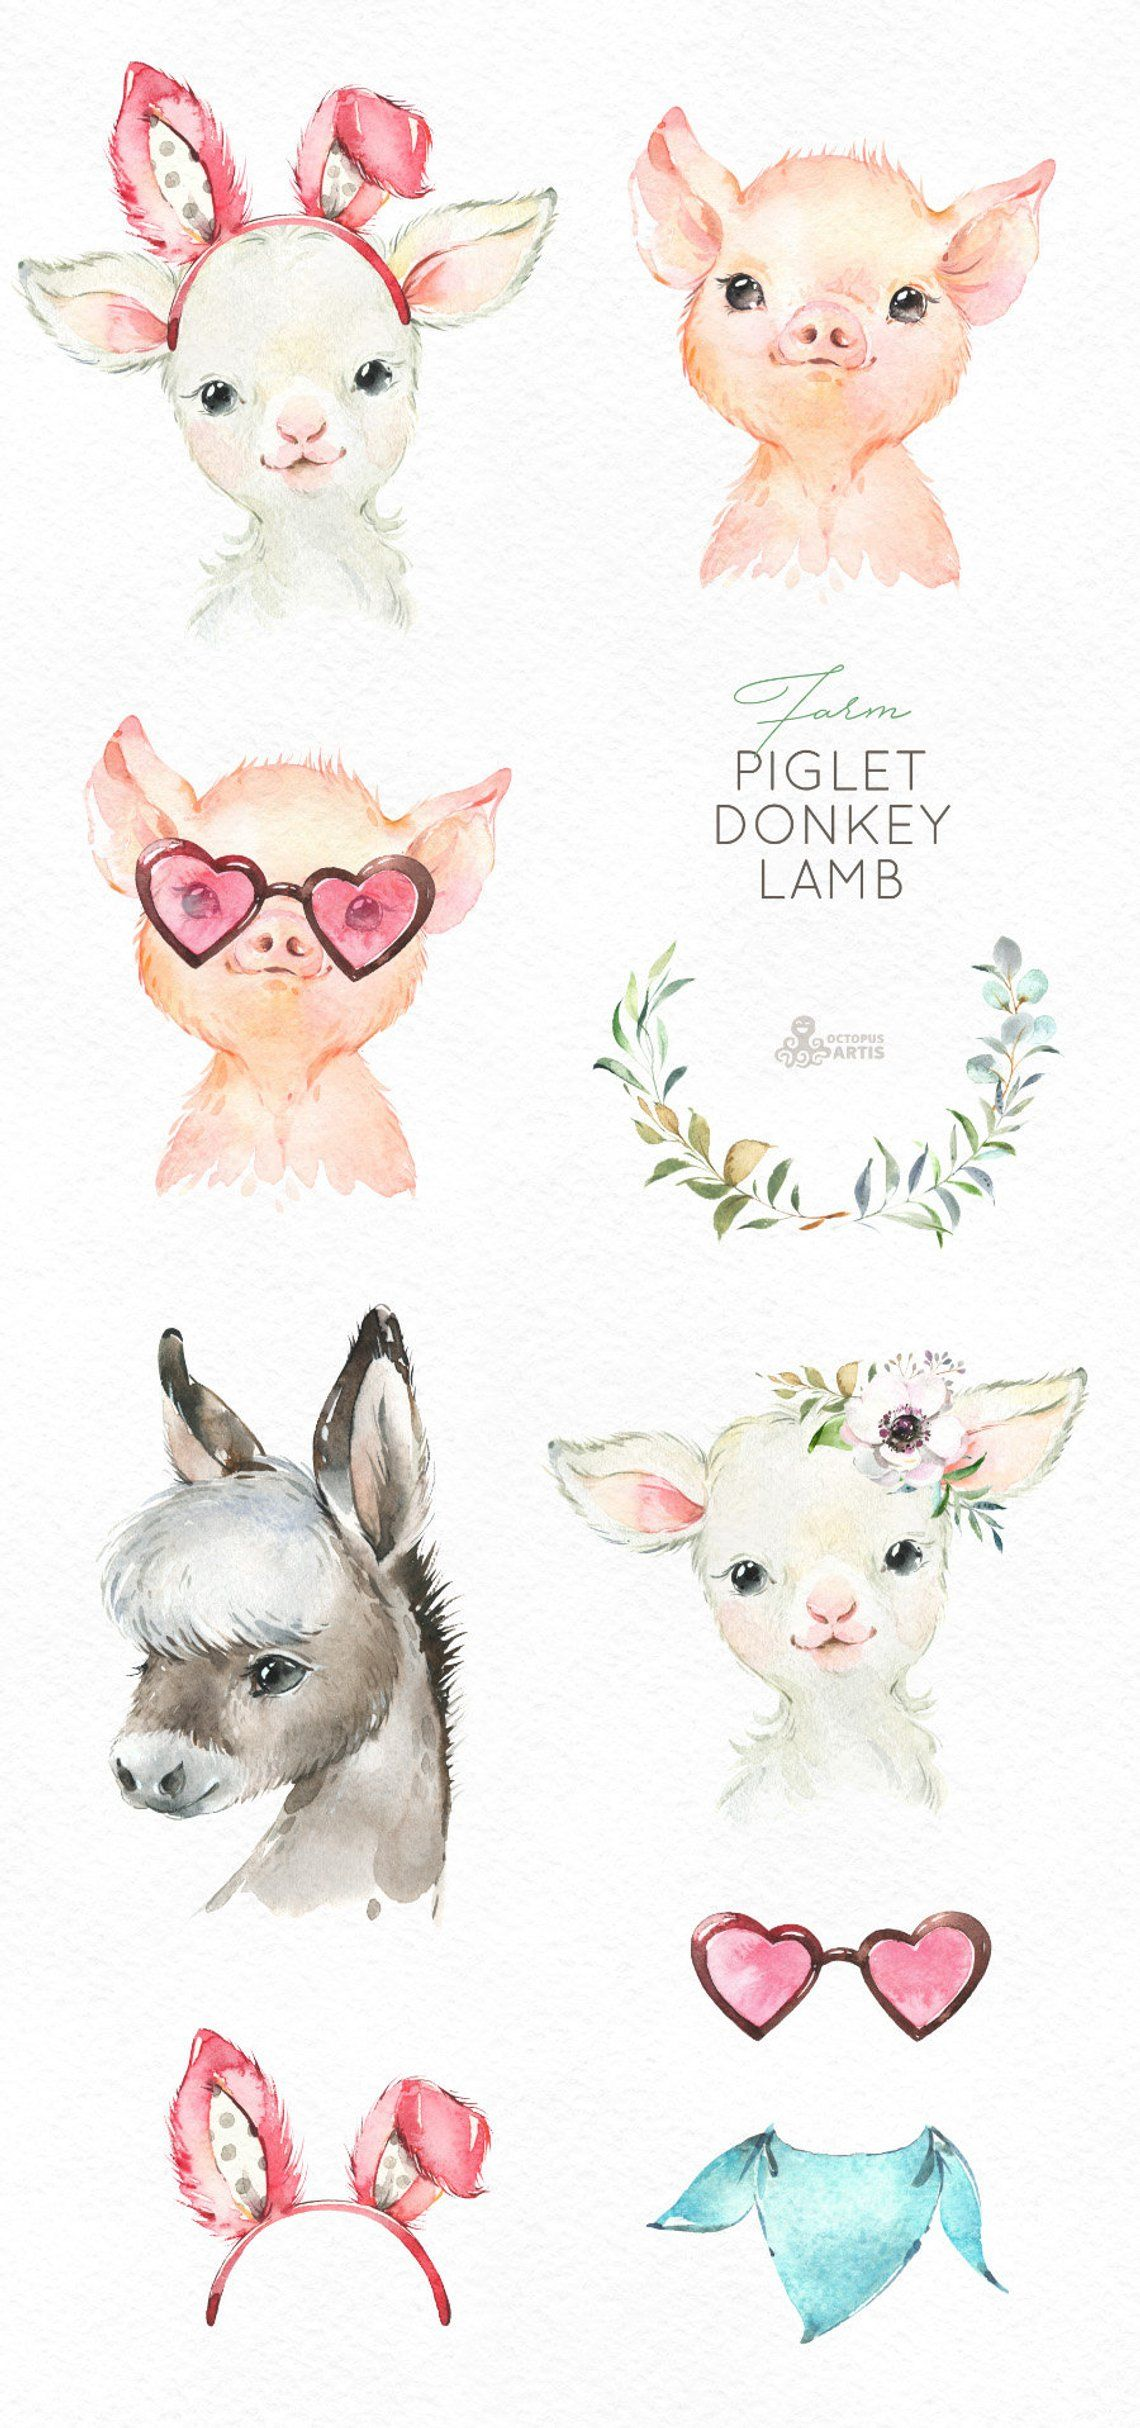 Baby donkey animals clipart jpg library Farm Piglet Donkey Lamb. Watercolor little animals clipart, baby pig ... jpg library